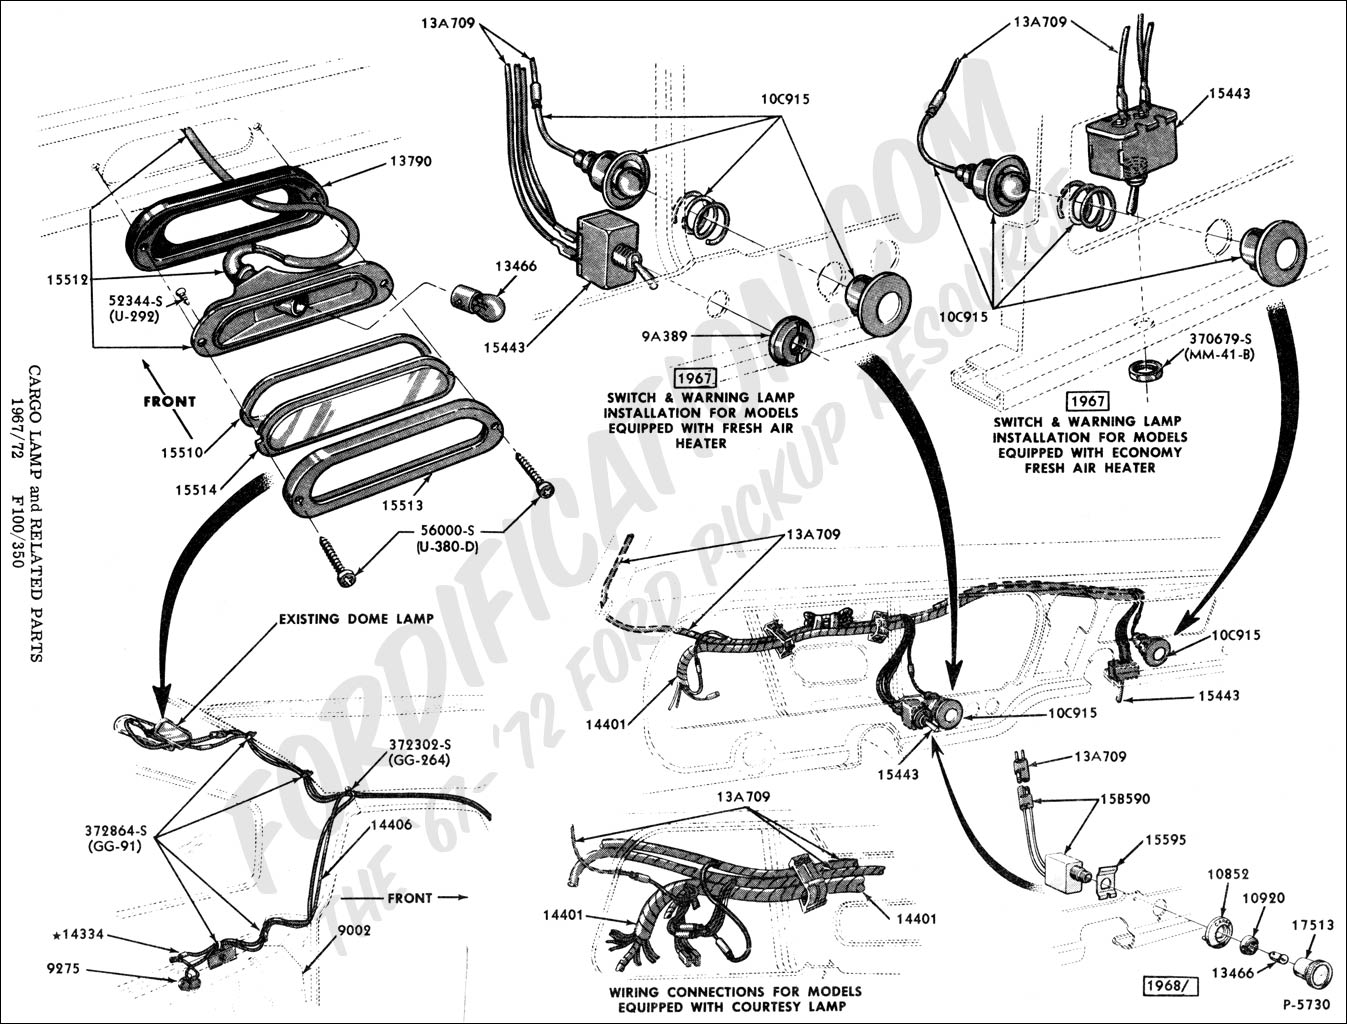 With Chevy Truck Wiring Diagram On 1969 Ford F 250 66 Thunderbird F100 Of 1981 Explained 1962 Galaxie Schematic